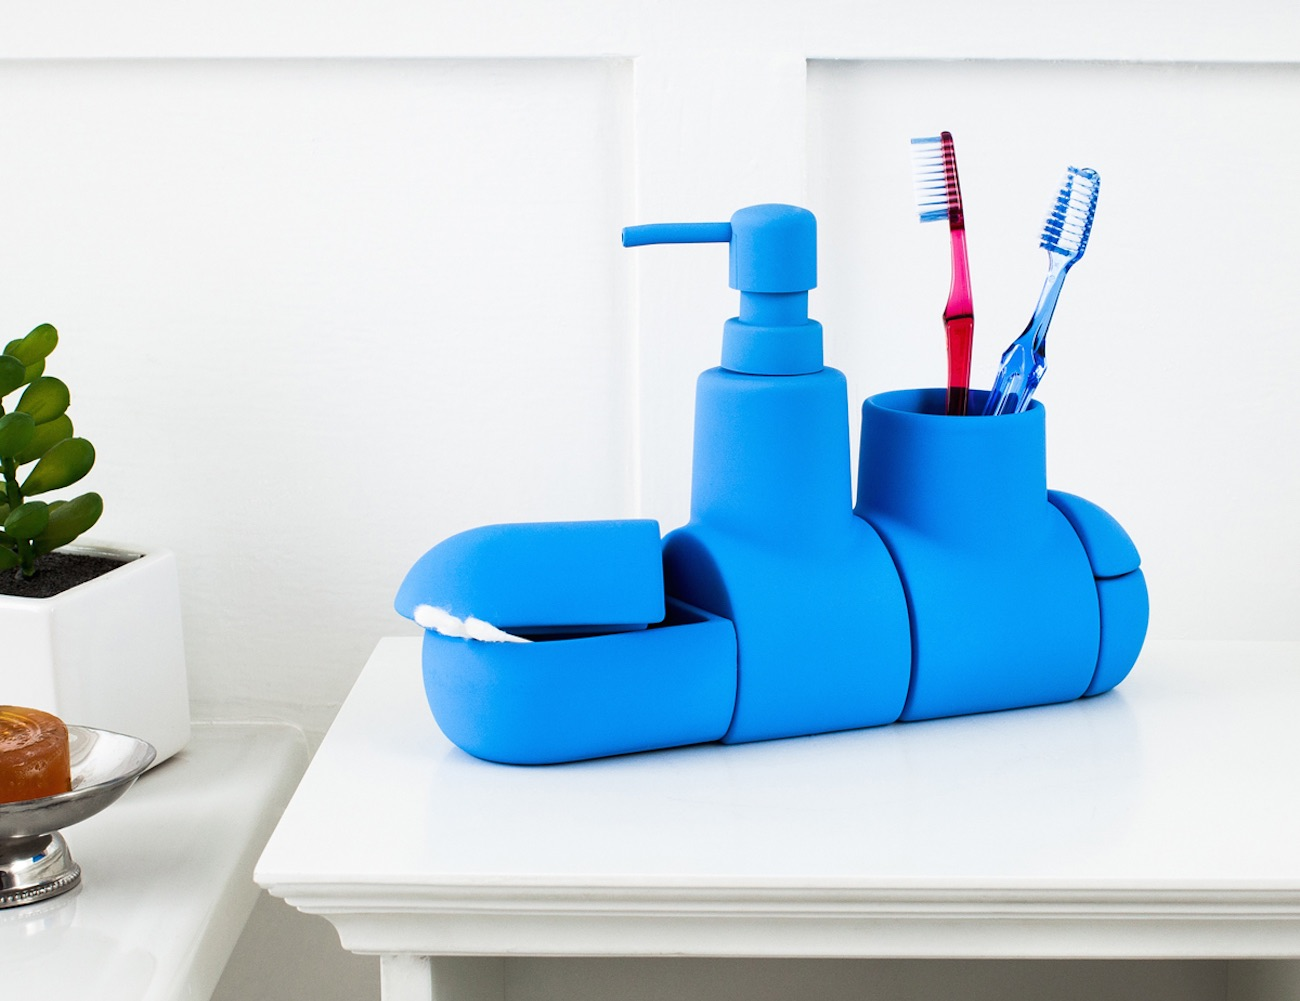 Popular Submarino Bathroom Set by Hector Serrano for Seletti